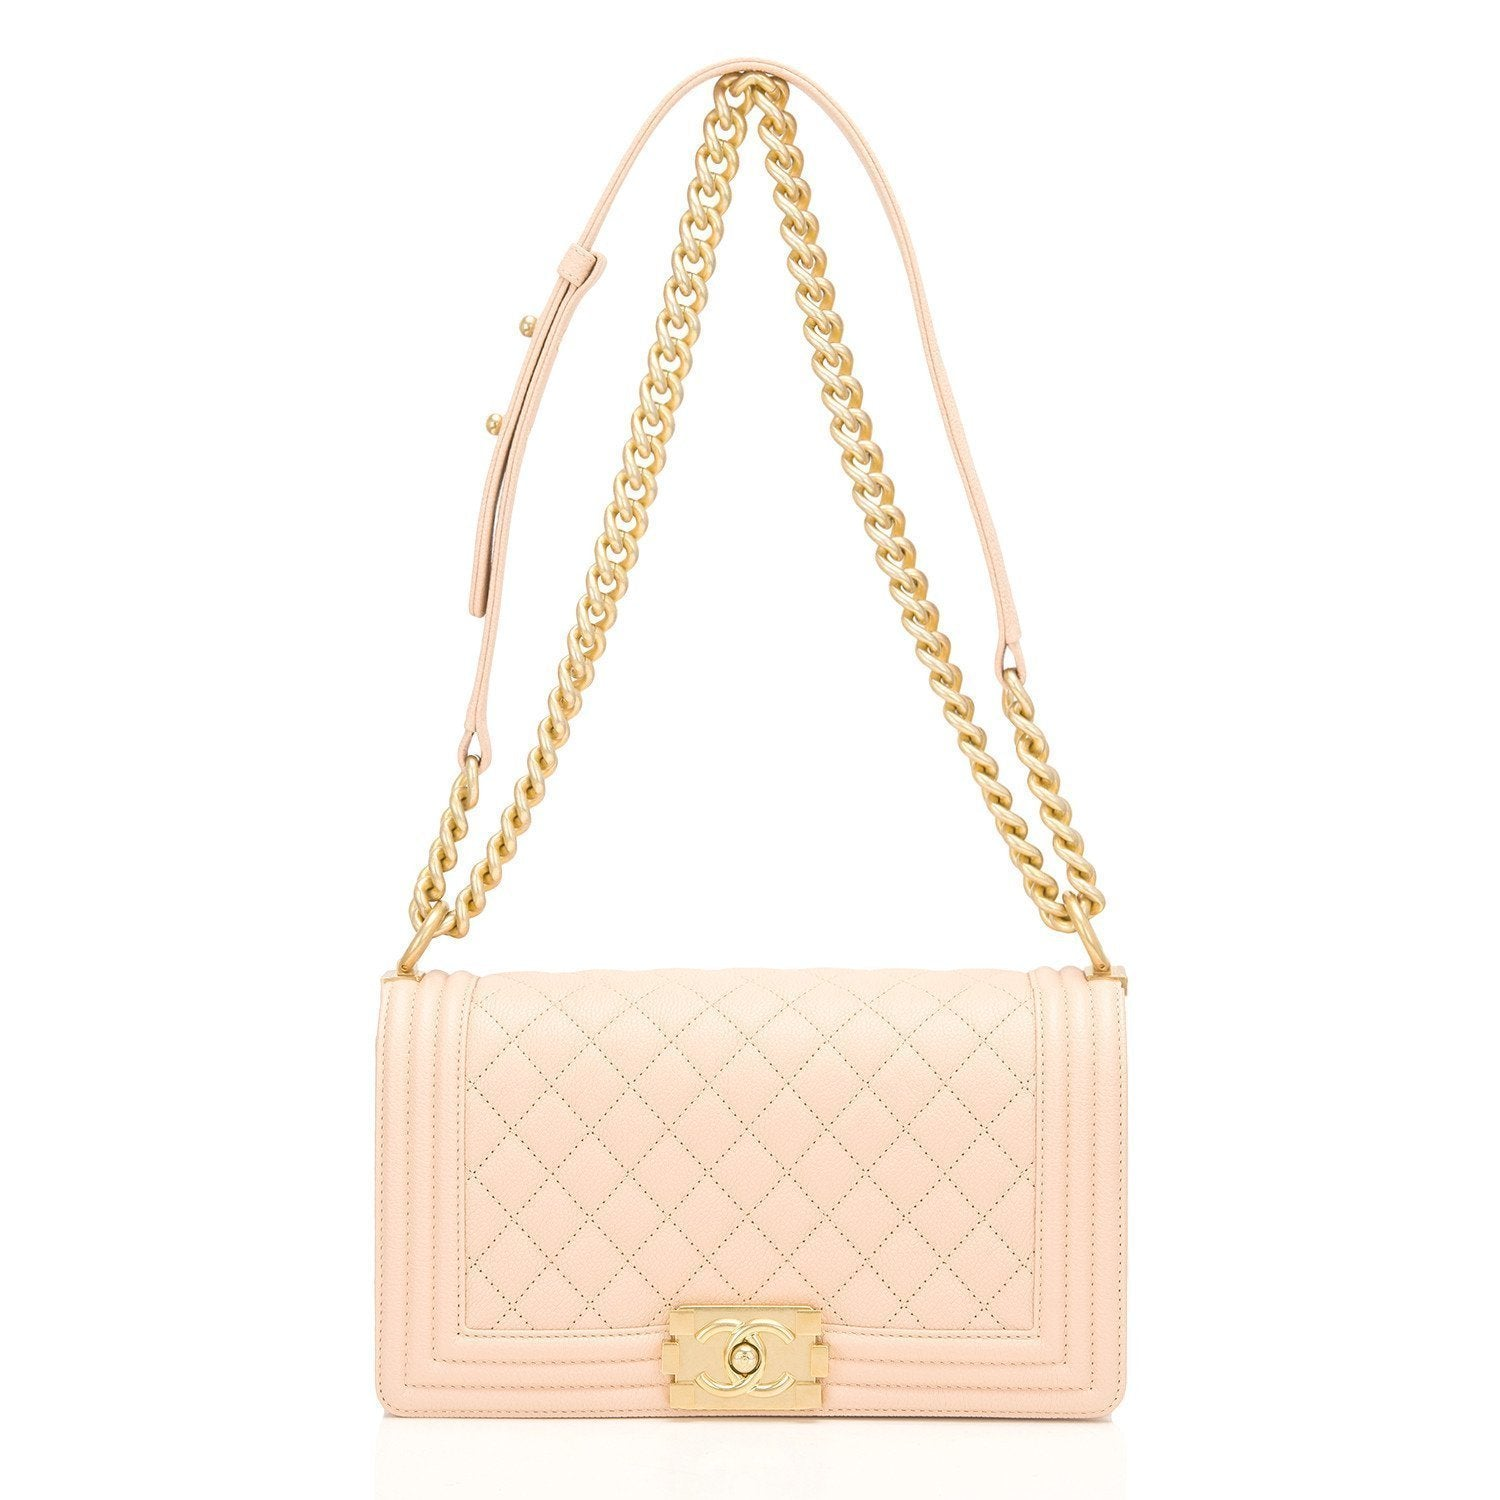 Chanel Light Beige Quilted Caviar Medium Boy Bag Handbags